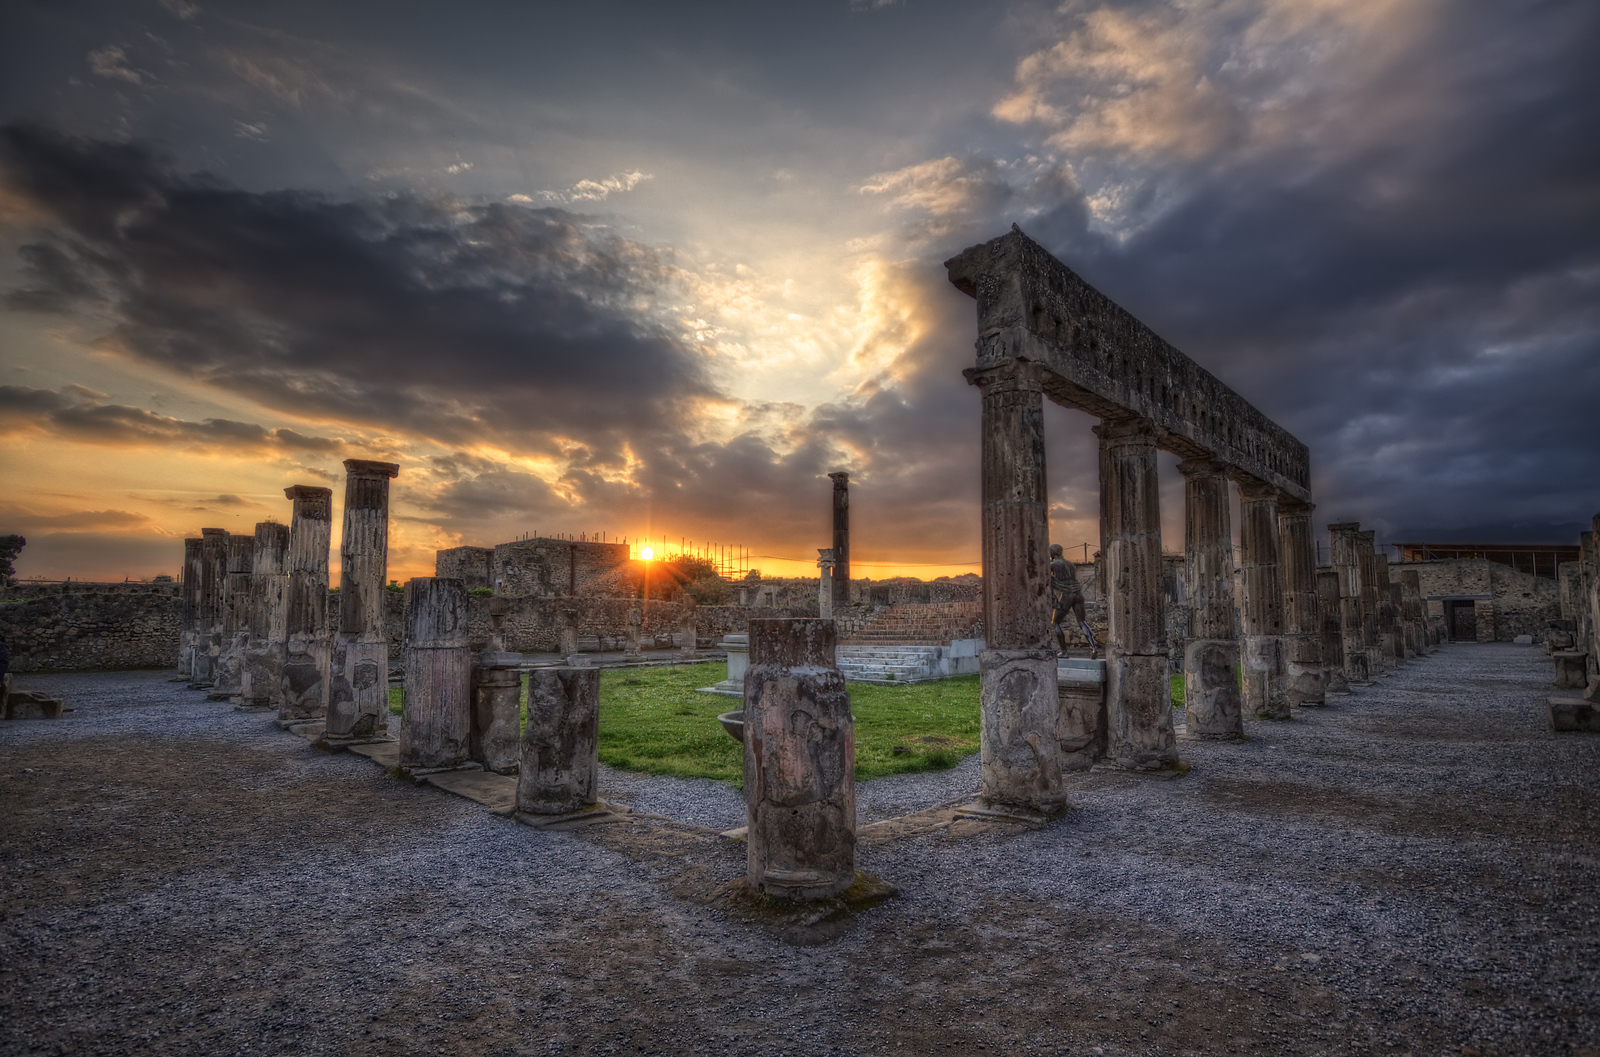 """Le temple d'Apollon. Follow me on my -Facebook page:   <a href=""""http://www.facebook.com/pages/Girolamos-HDR-Photography/176753345698682"""" rel=""""nofollow    me"""">Girolamo's HDR photos</a> -Google+ page: <a href=""""https://plus.google.com/108629717769018996477"""" rel=""""nofollow    me"""">Girolamo Cracchiolo</a> -My Blog: <a href=""""http://girolamohdrphotos.wordpress.com/"""" rel=""""nofollow    me"""">Girolamo's HDR Photos - Le blog</a>"""